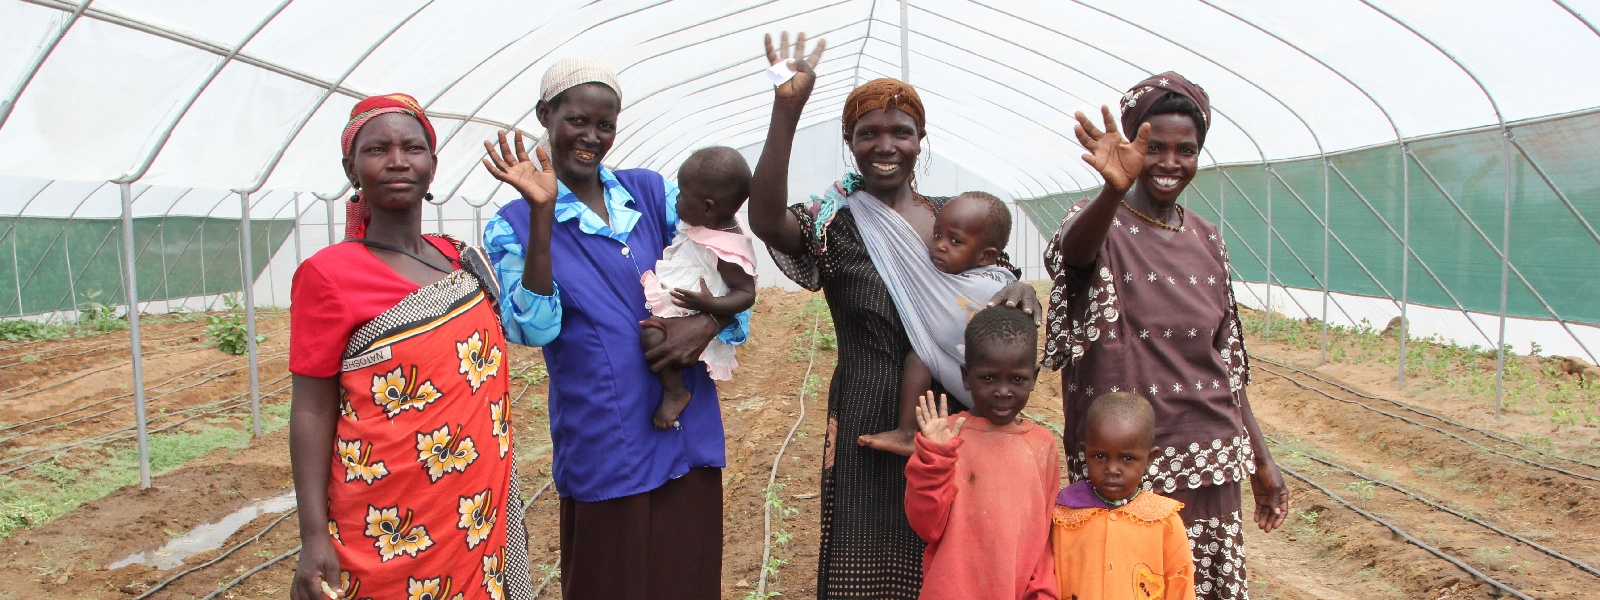 Closing the gender gap in agriculture is recognized as one of the most effective paths towards increased yields and reduction of undernutrition.